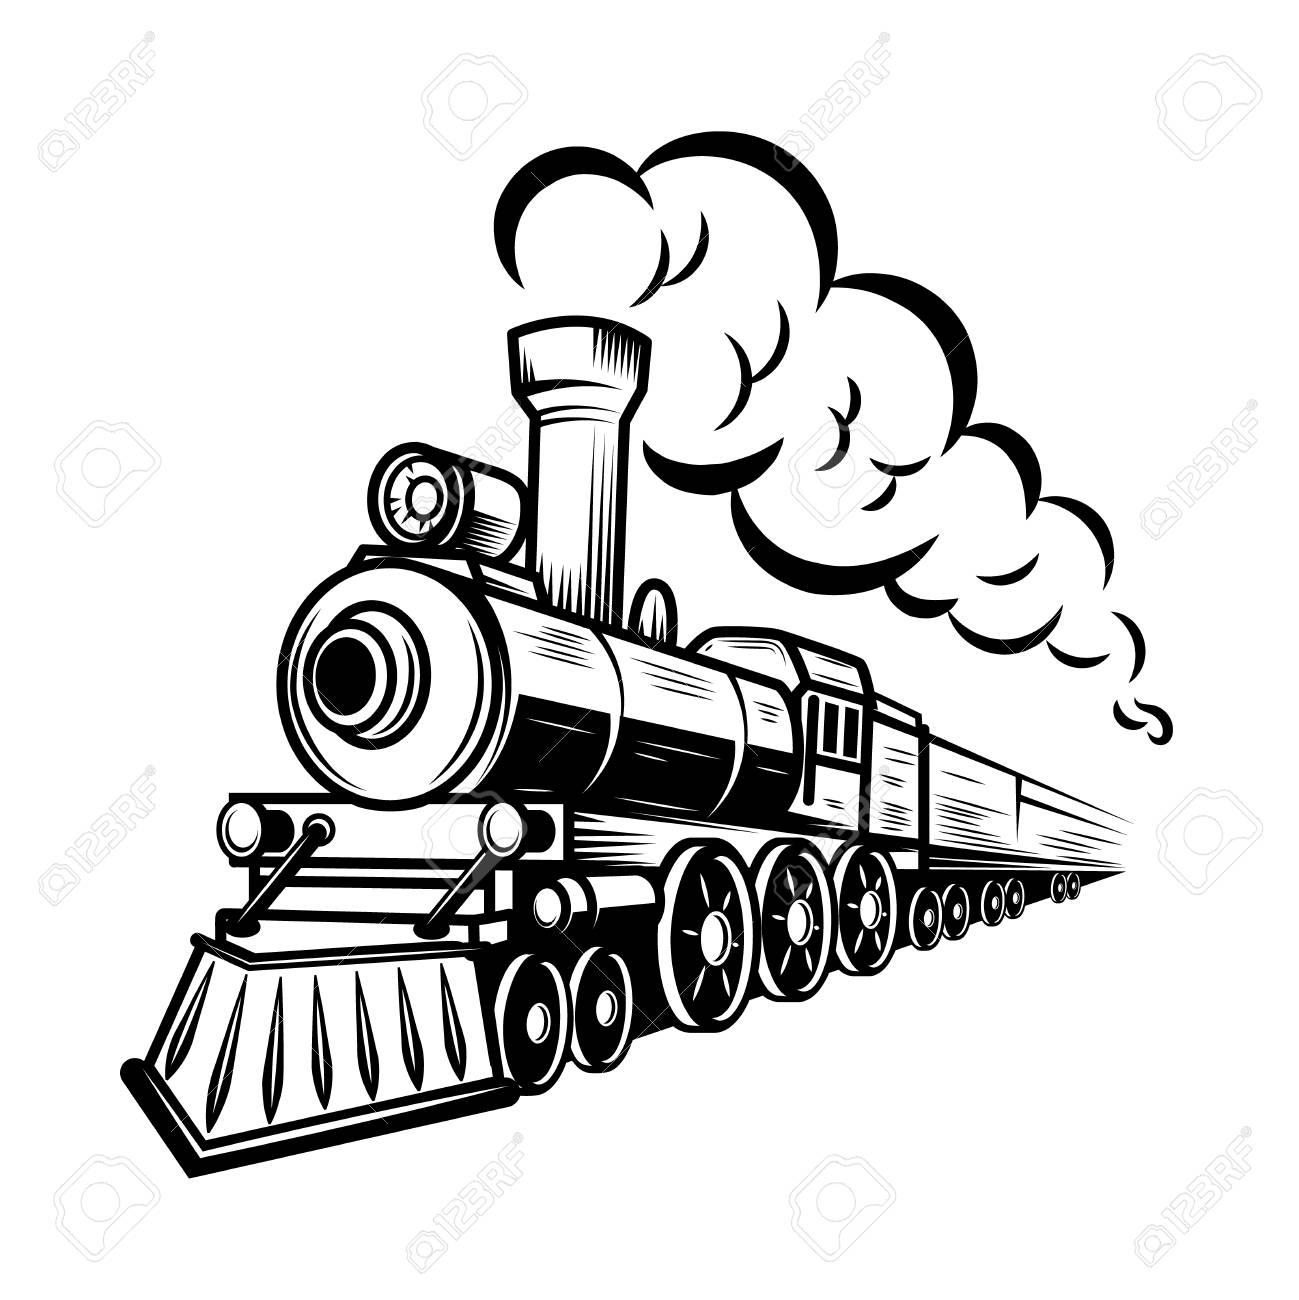 Retro Train Illustration Isolated On White Background Design Stock Photo Picture And Royalty Free Image Image 105217989